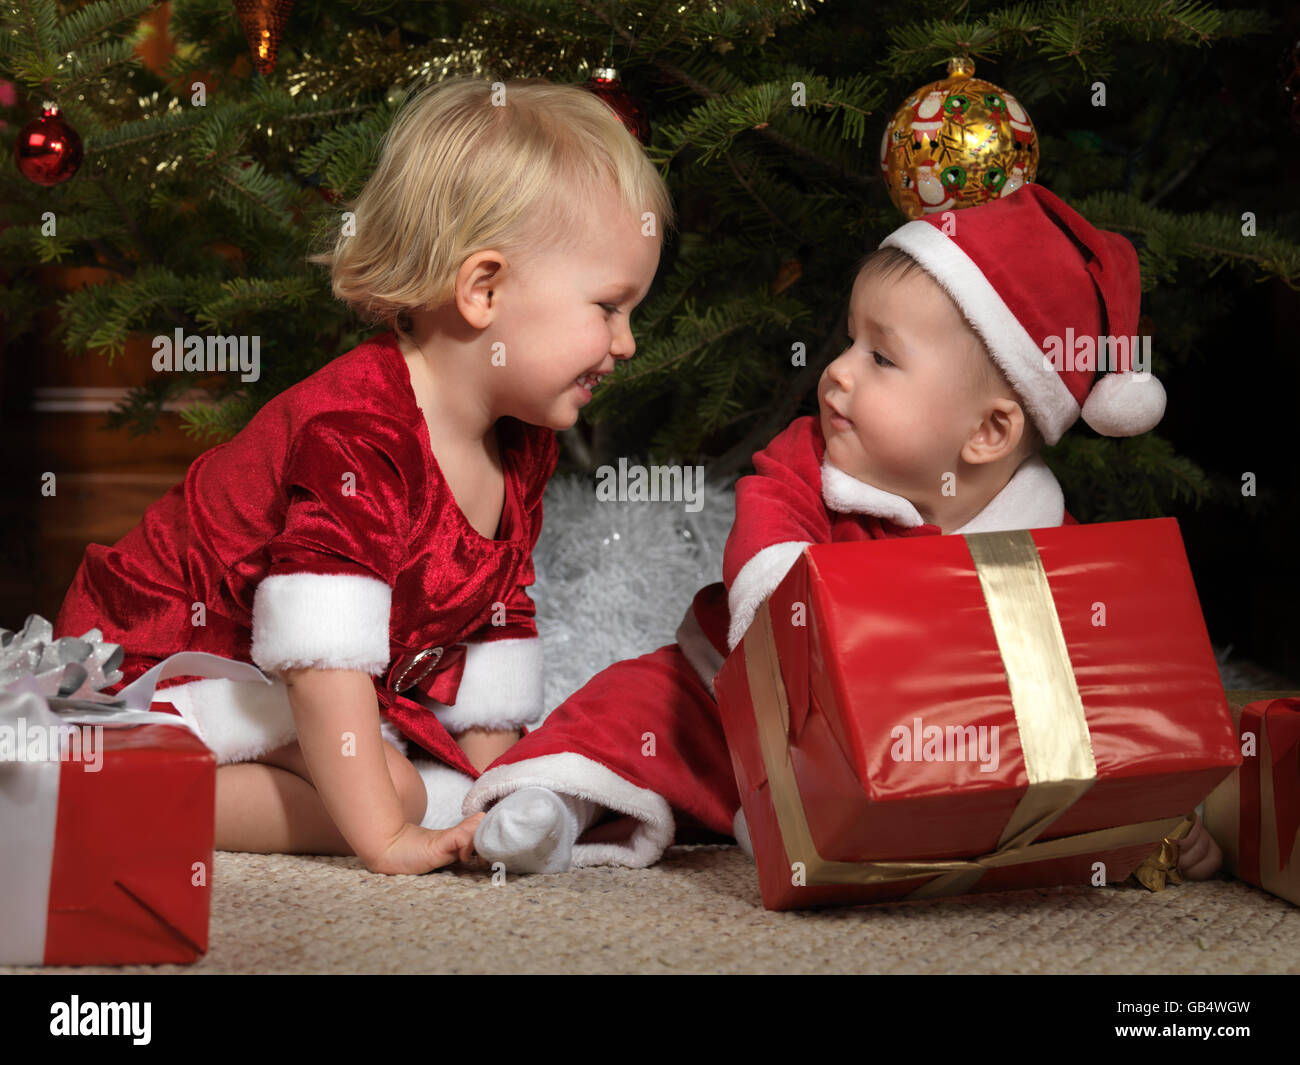 Christmas Tree Presents Boy Gifts Stockfotos & Christmas Tree ...